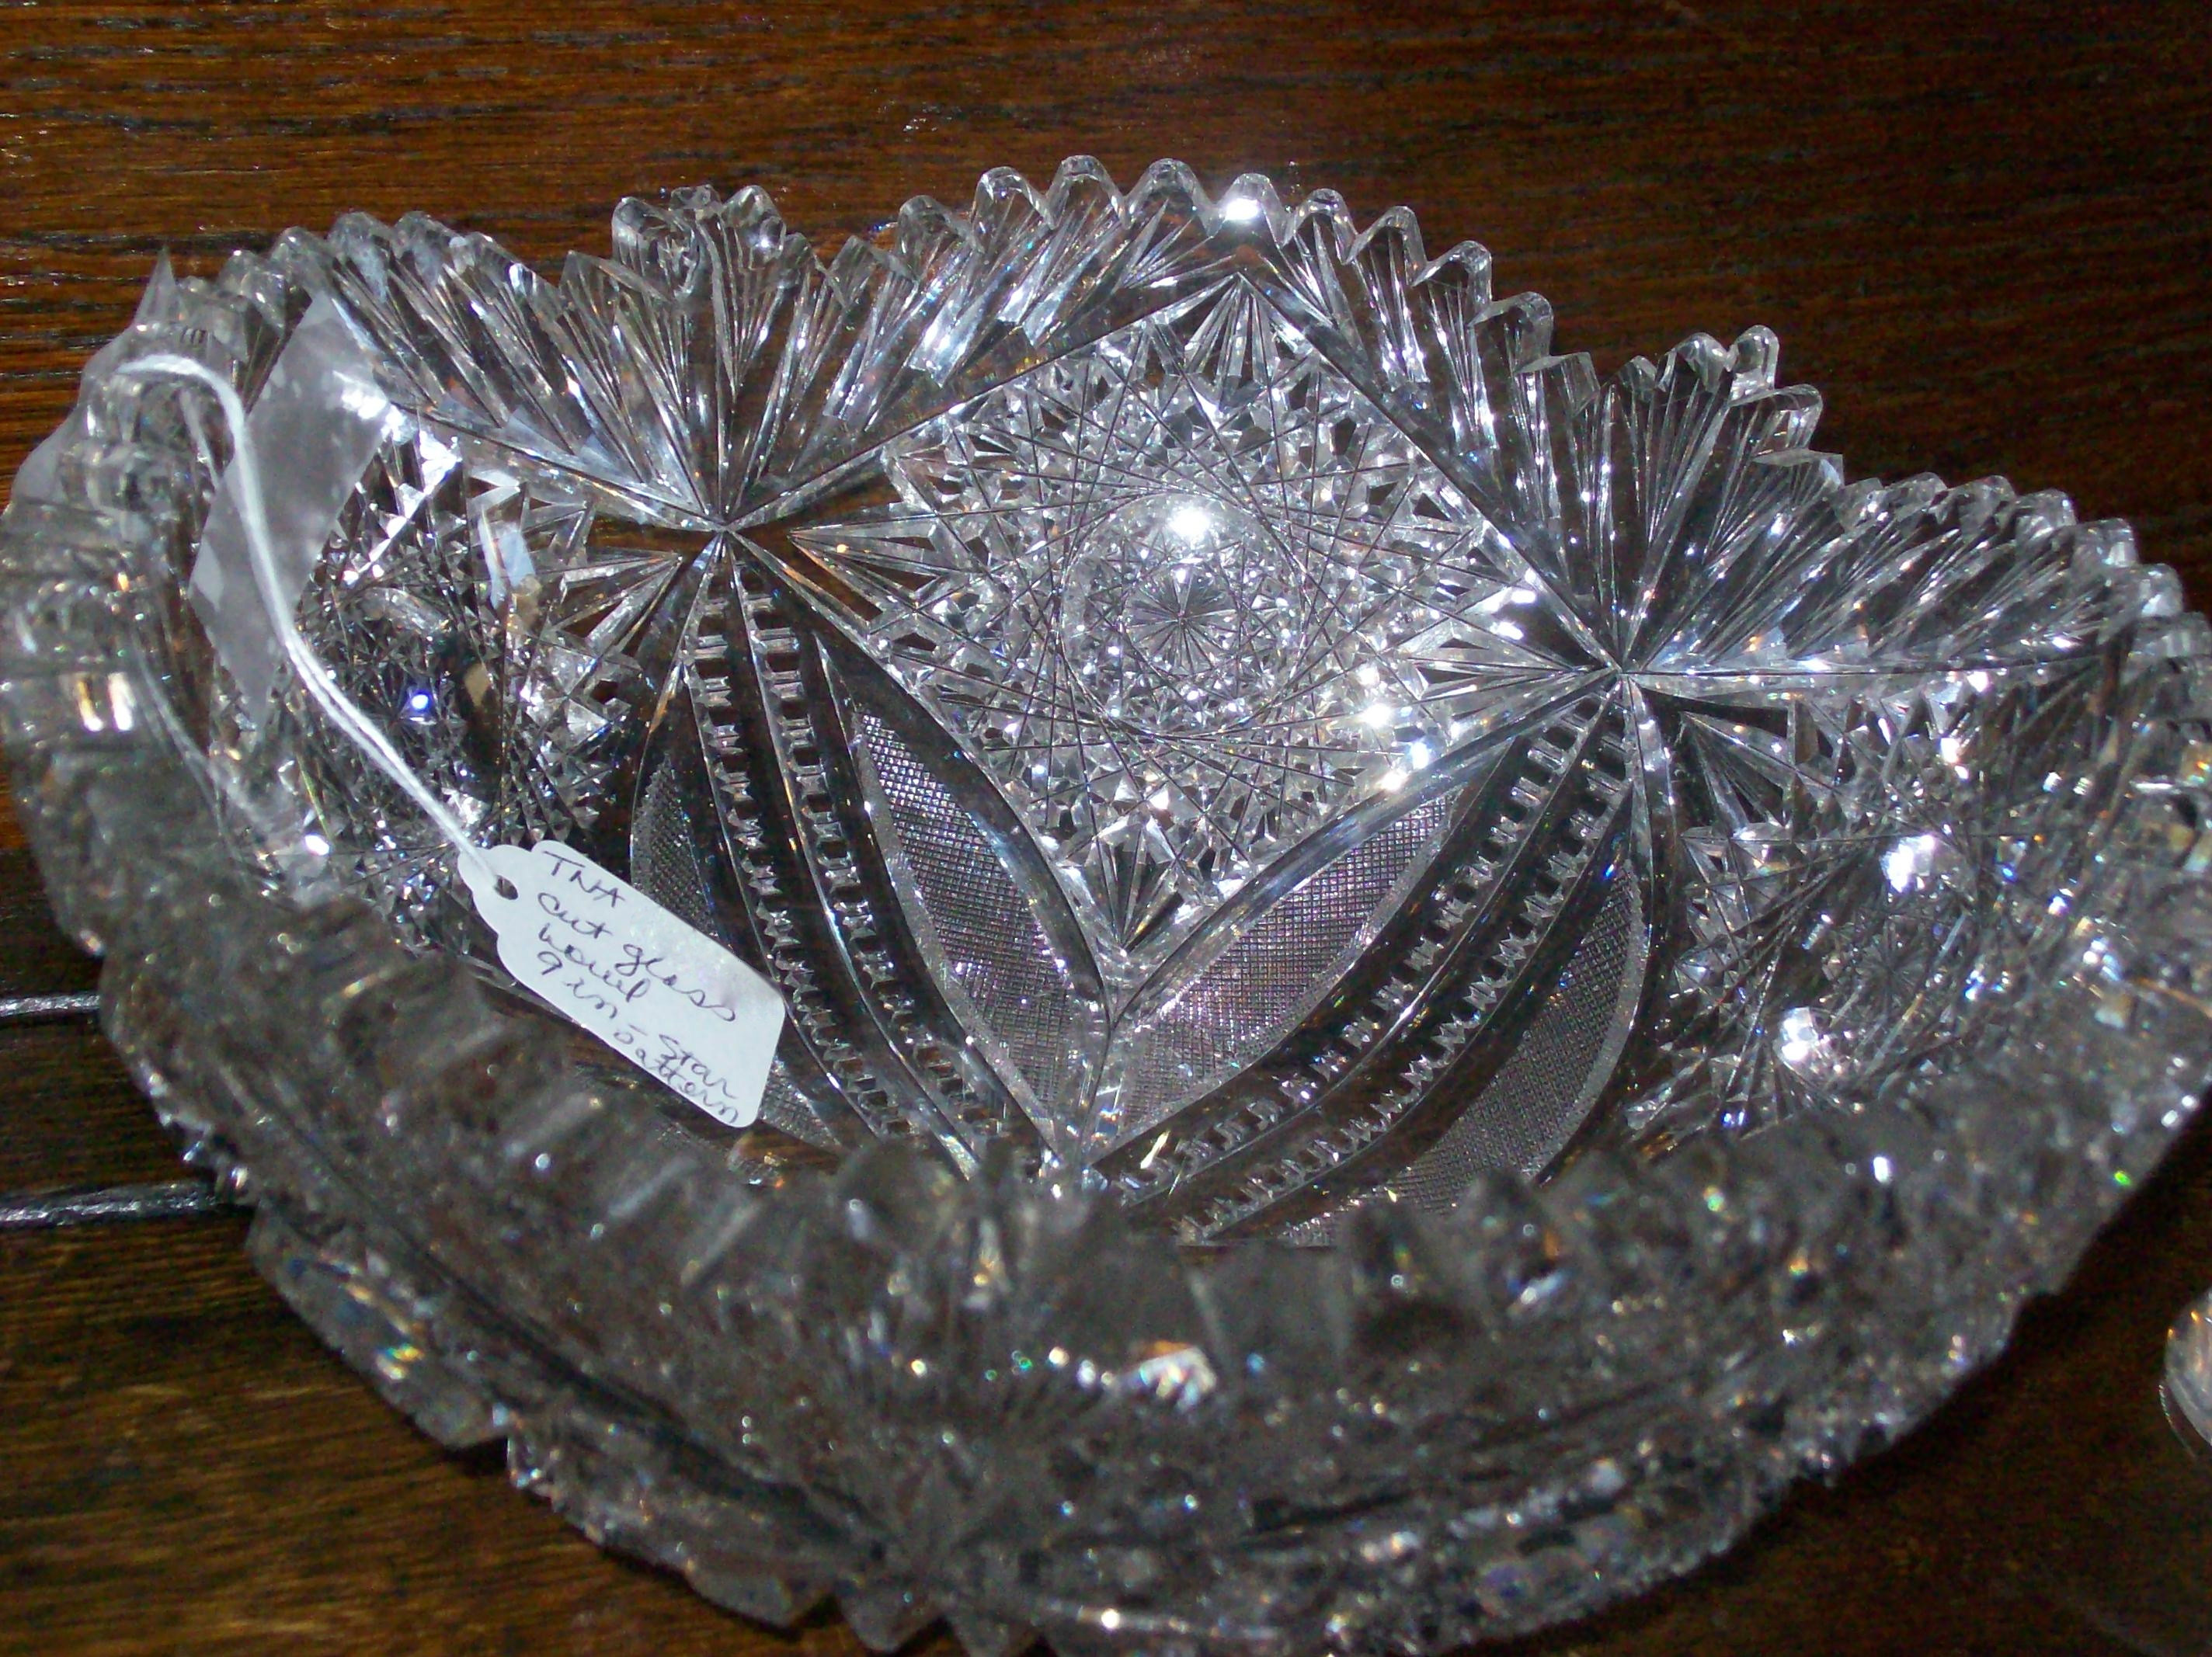 Rogaska Crystal Vase Patterns Of is It Pressed Glass or Cut Glass Janvier Road where Old Becomes with 9 Star Pattern American Brilliant Bowl Photo Courtesy Of Treehouse Antiques